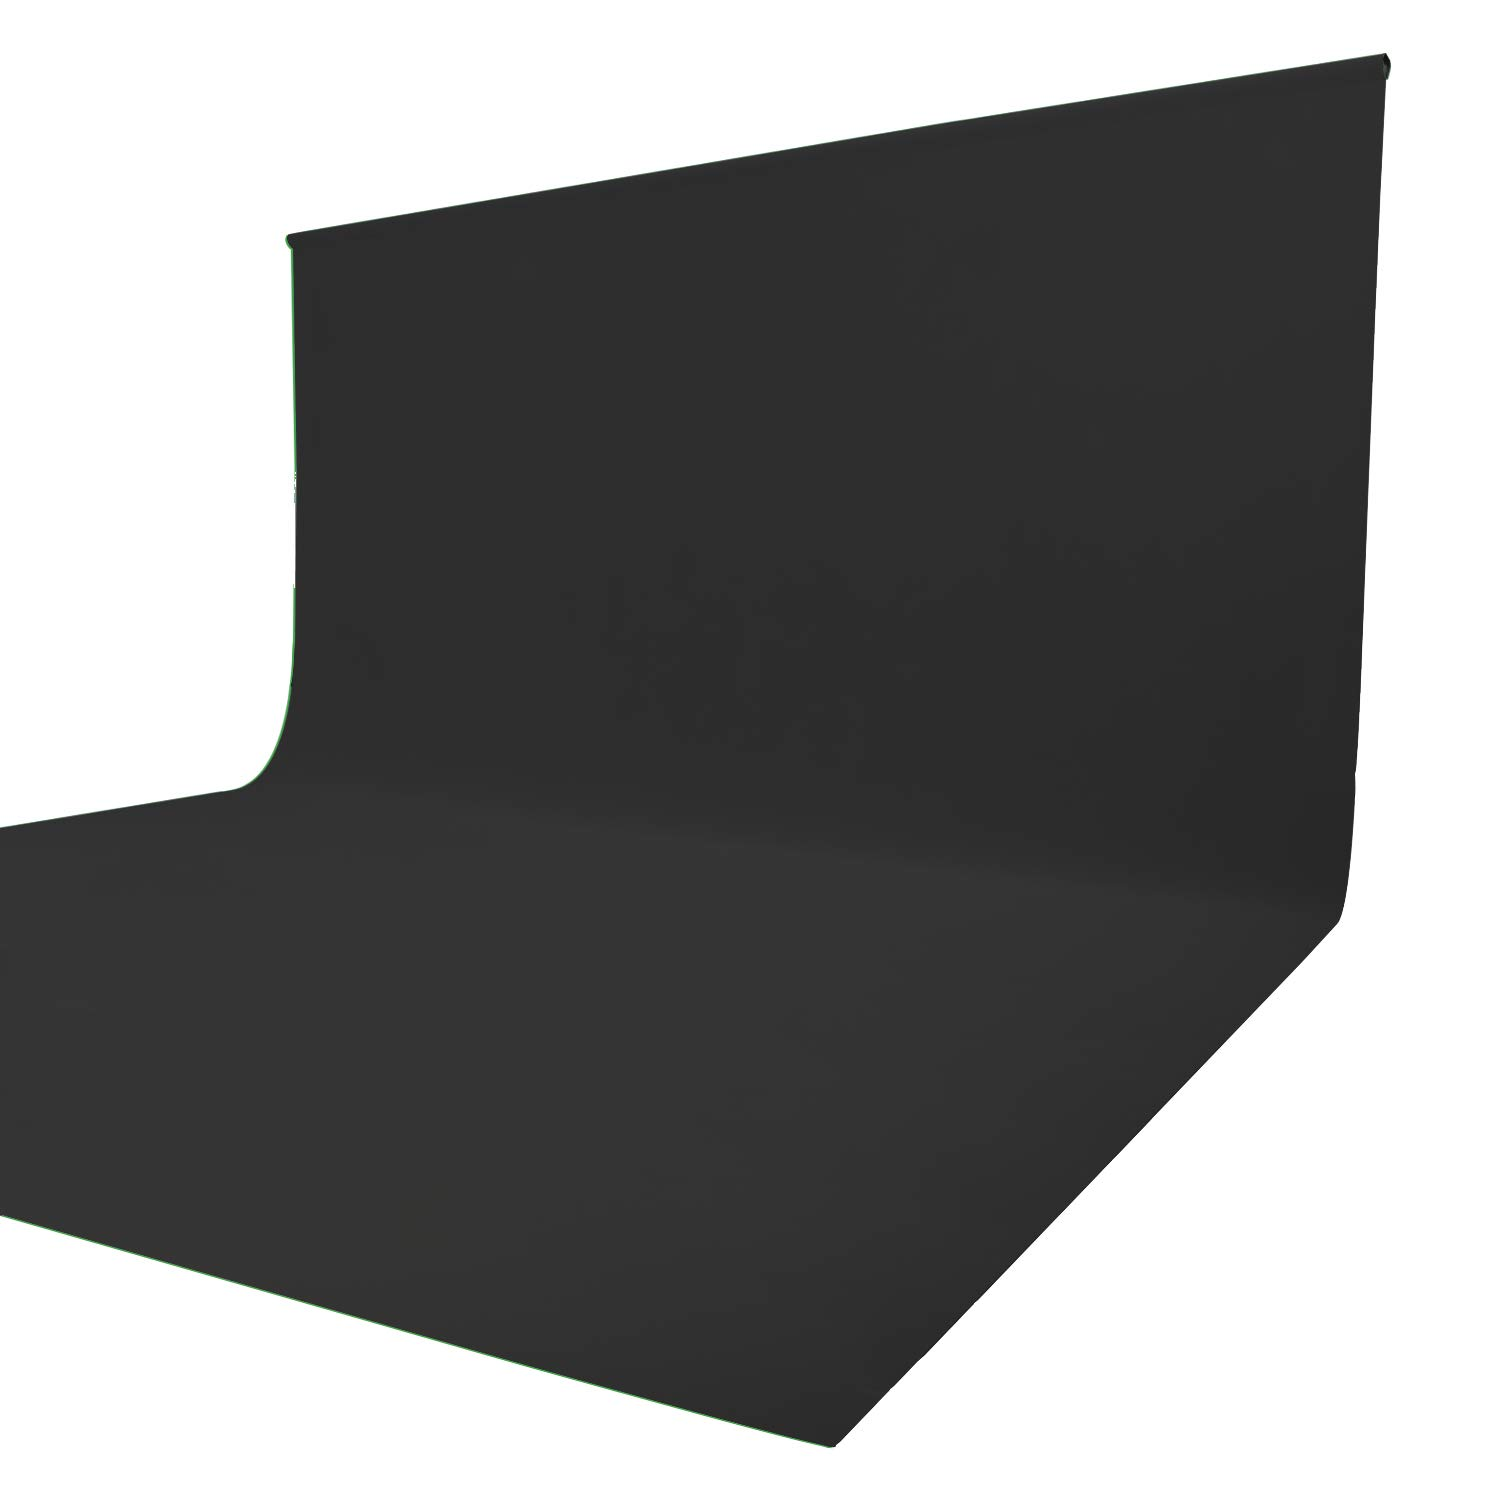 Issuntex 10X20 ft Black Background Muslin Backdrop,Photo Studio,Collapsible High Density Screen for Video Photography and Television by ISSUNTEX